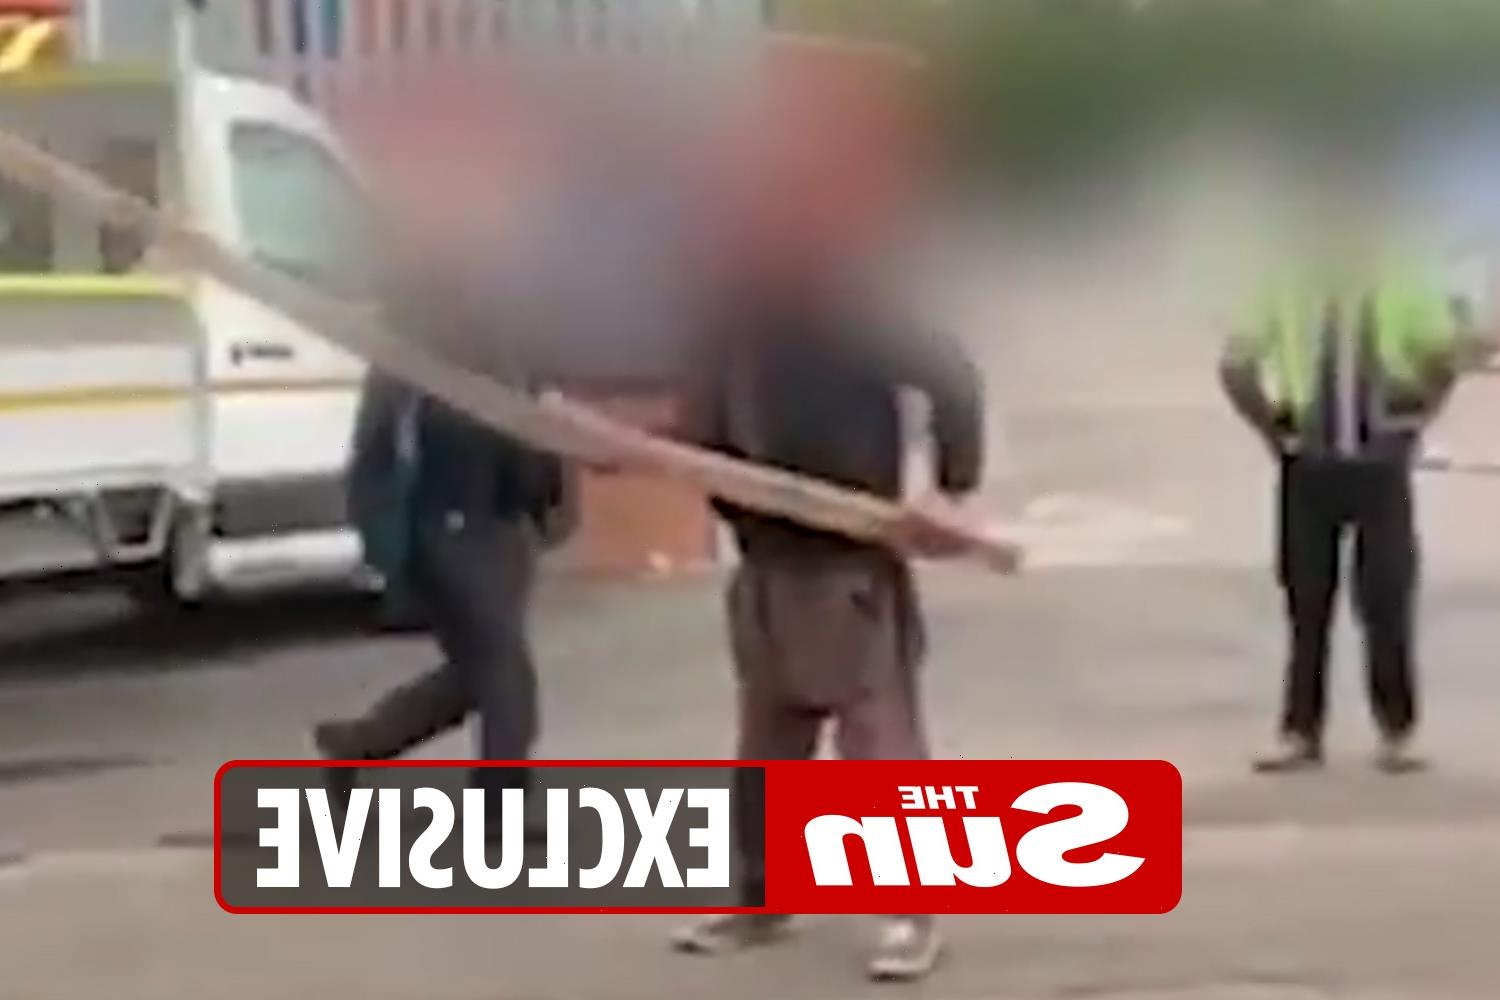 Shocking moment workers clash with planks and crowbars in massive industrial estate brawl over 'building supplies'